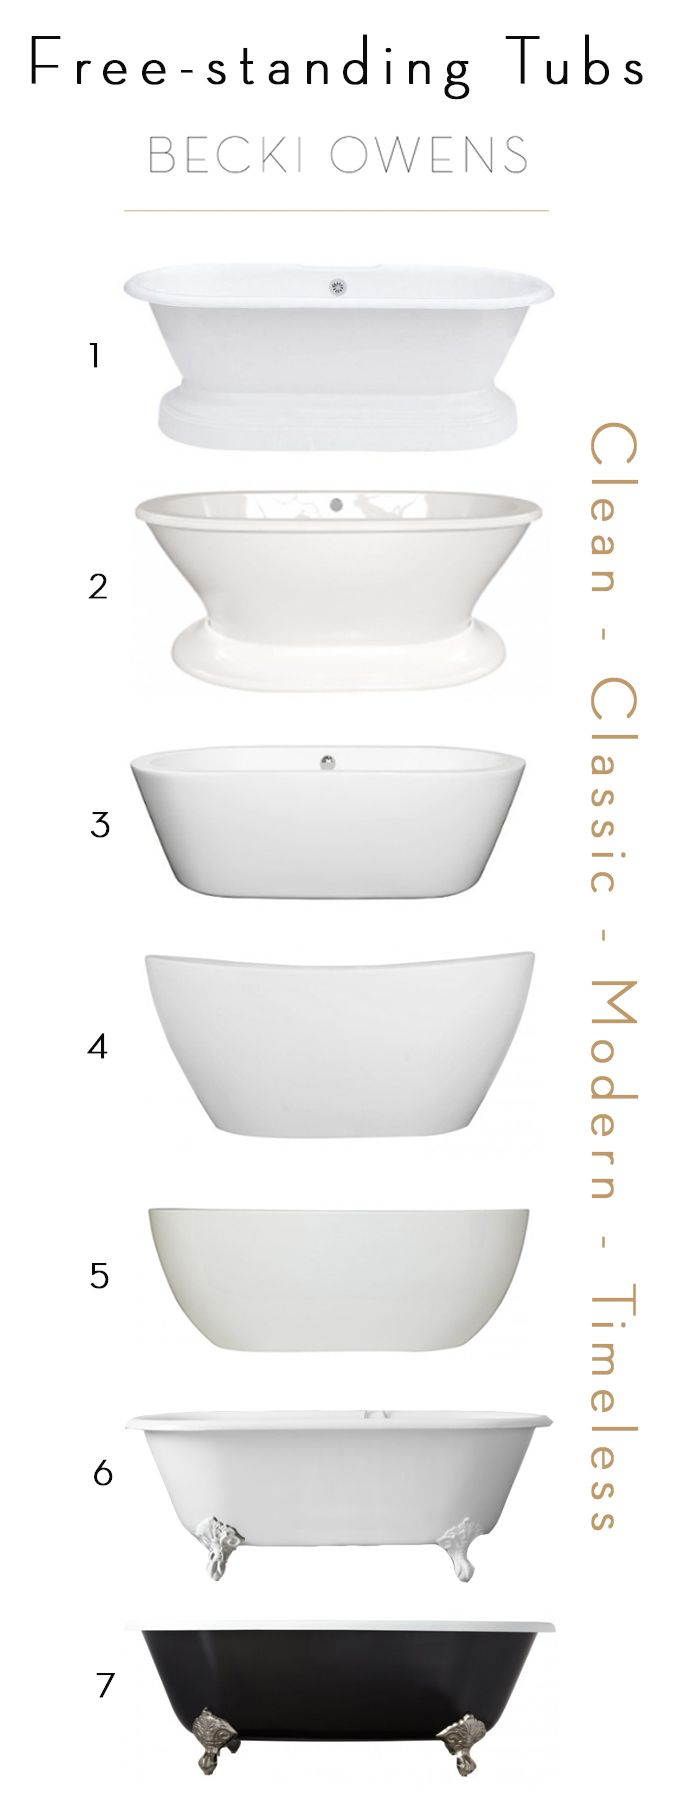 BECKI OWENS - 6 Options for Free-standing Tubs. Details + pics today on the blog.